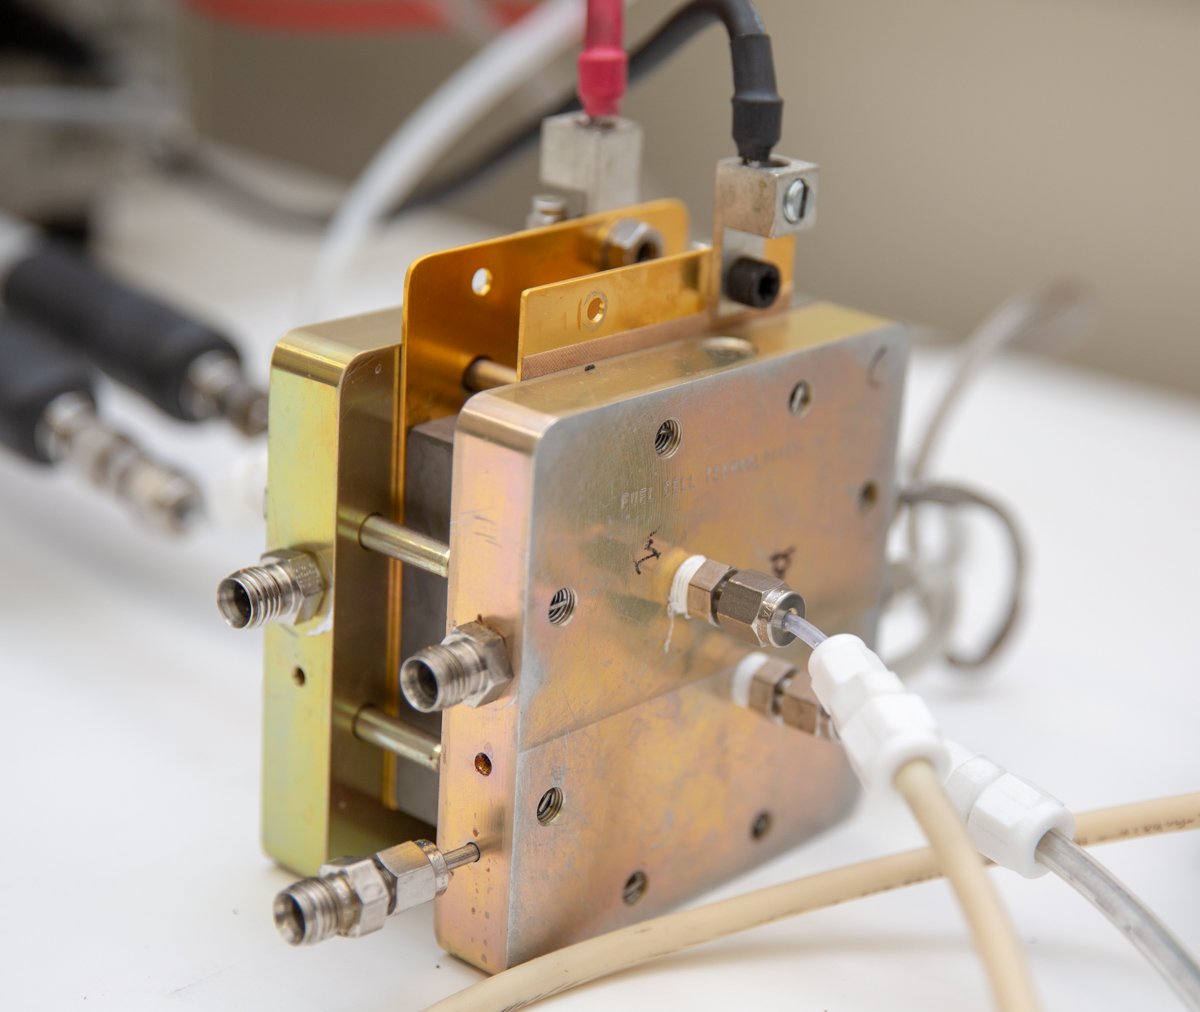 New fuel cell concept brings biological design to better electricity